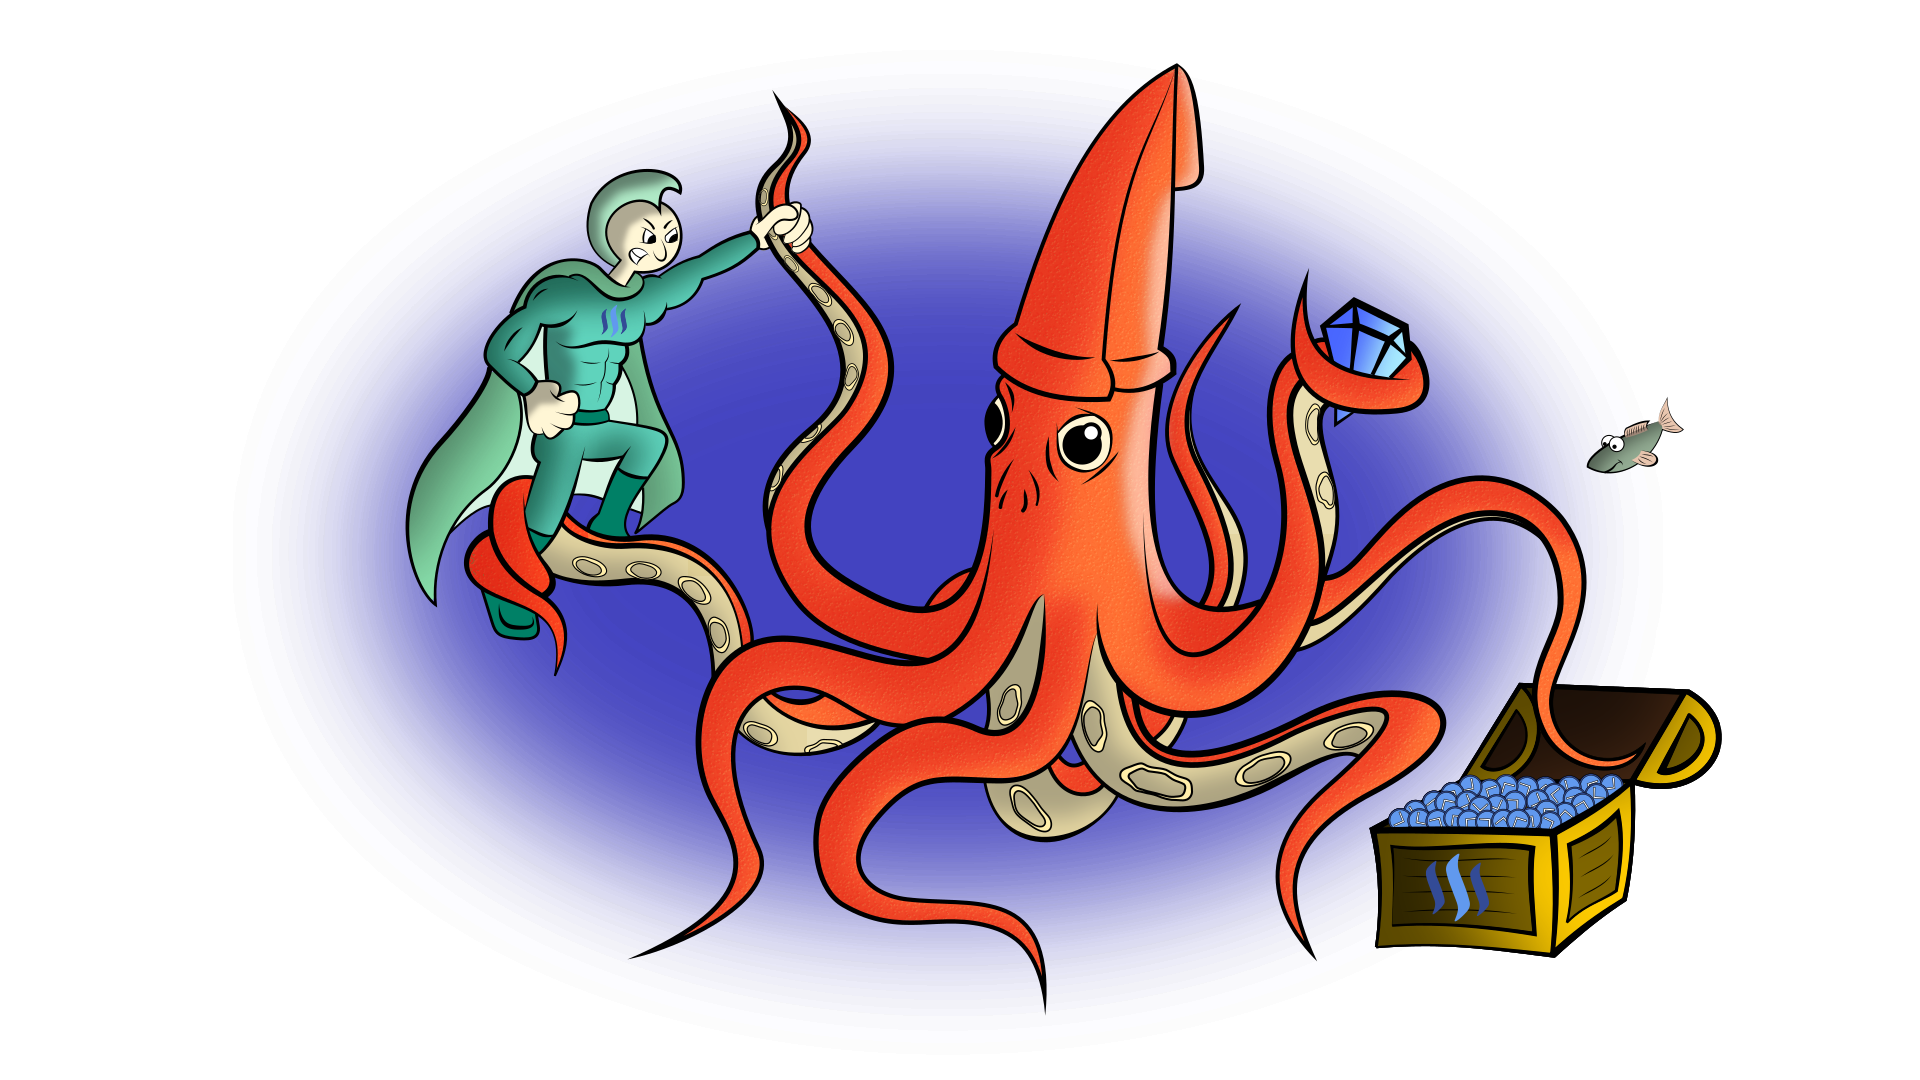 Drawing with steemit squid. Inkscape png to vector